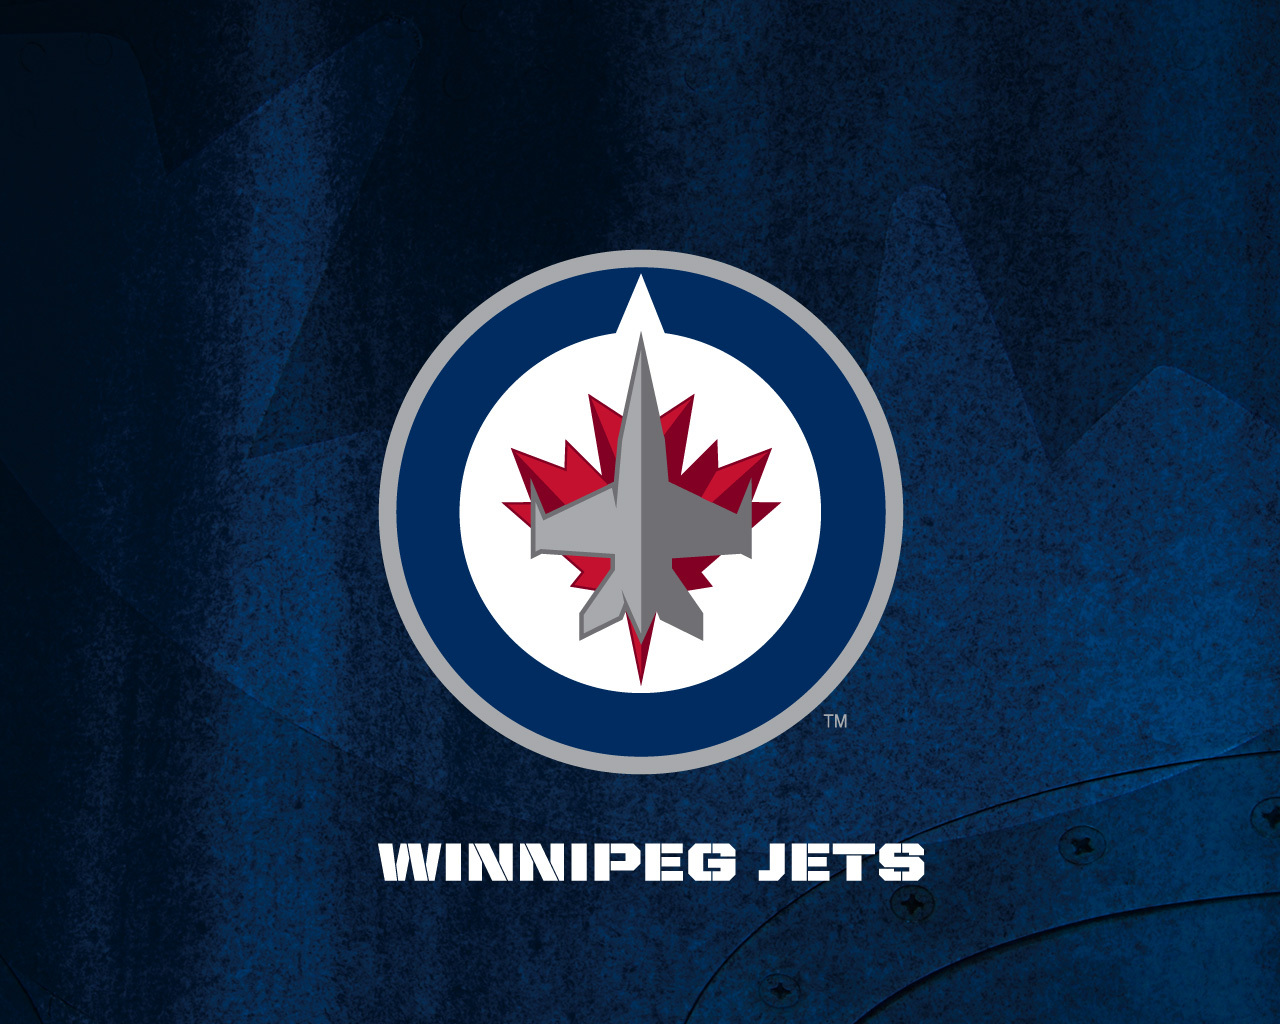 http://3.cdn.nhle.com/jets/v2/ext/images/wallpapers/wallpaper_logo_1280x1024.jpg